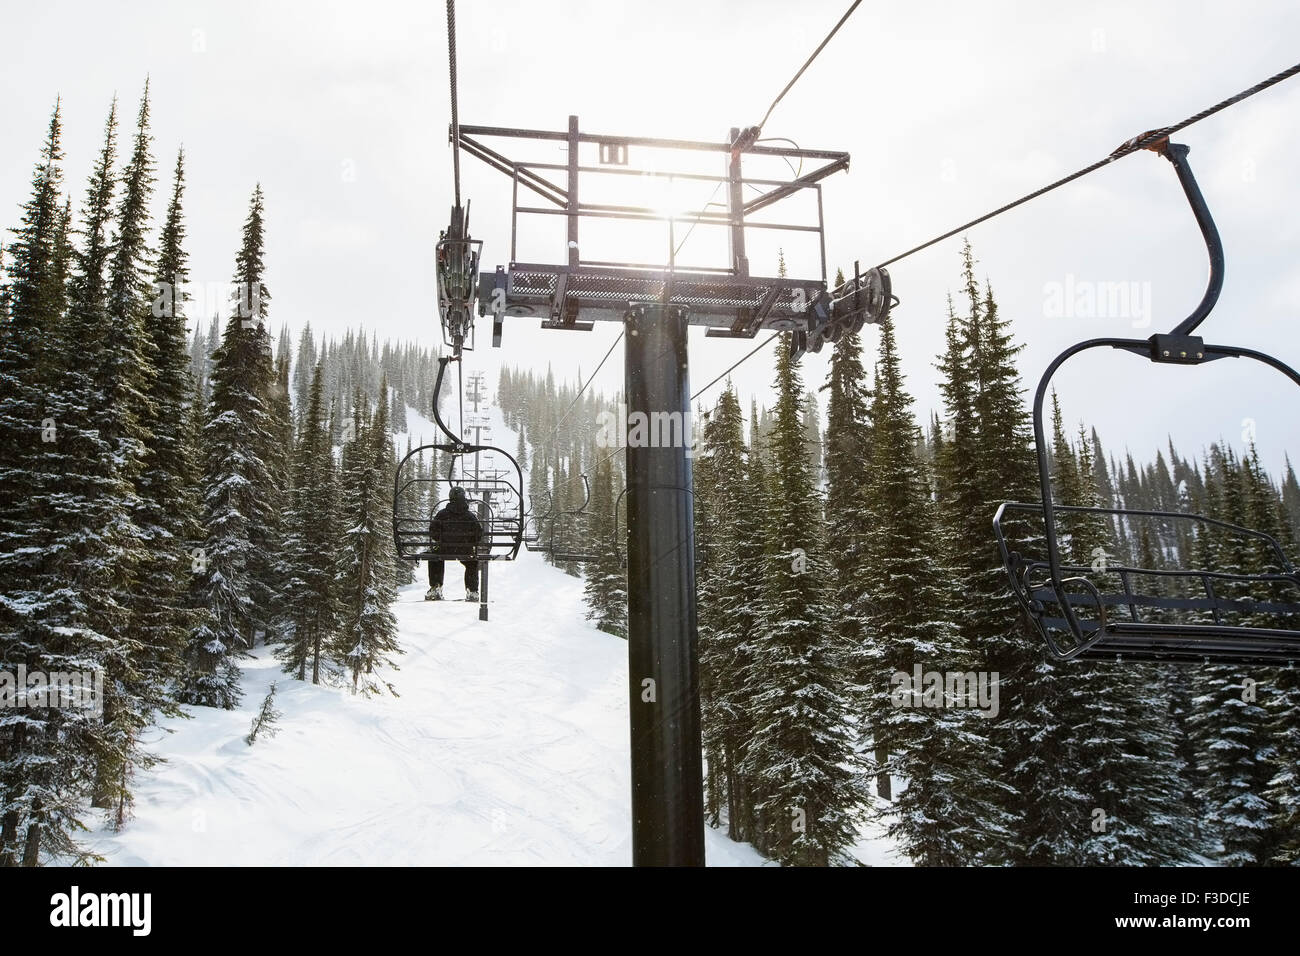 Man in ski lift, rear view - Stock Image